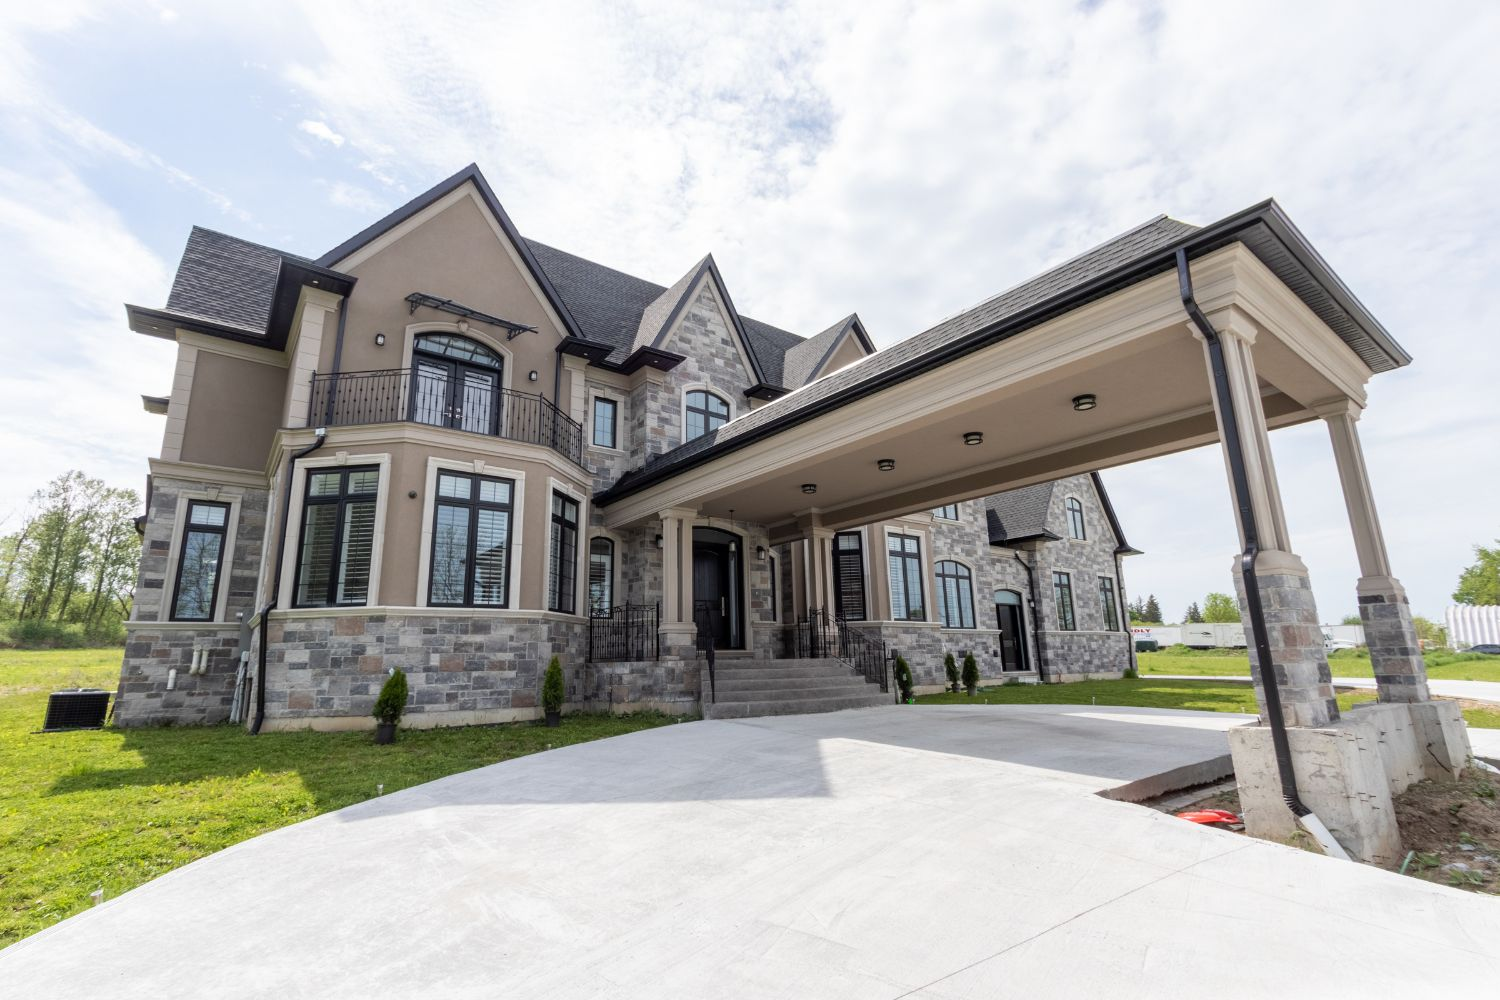 Custom Homes Build | Pickering - AK Design & Build